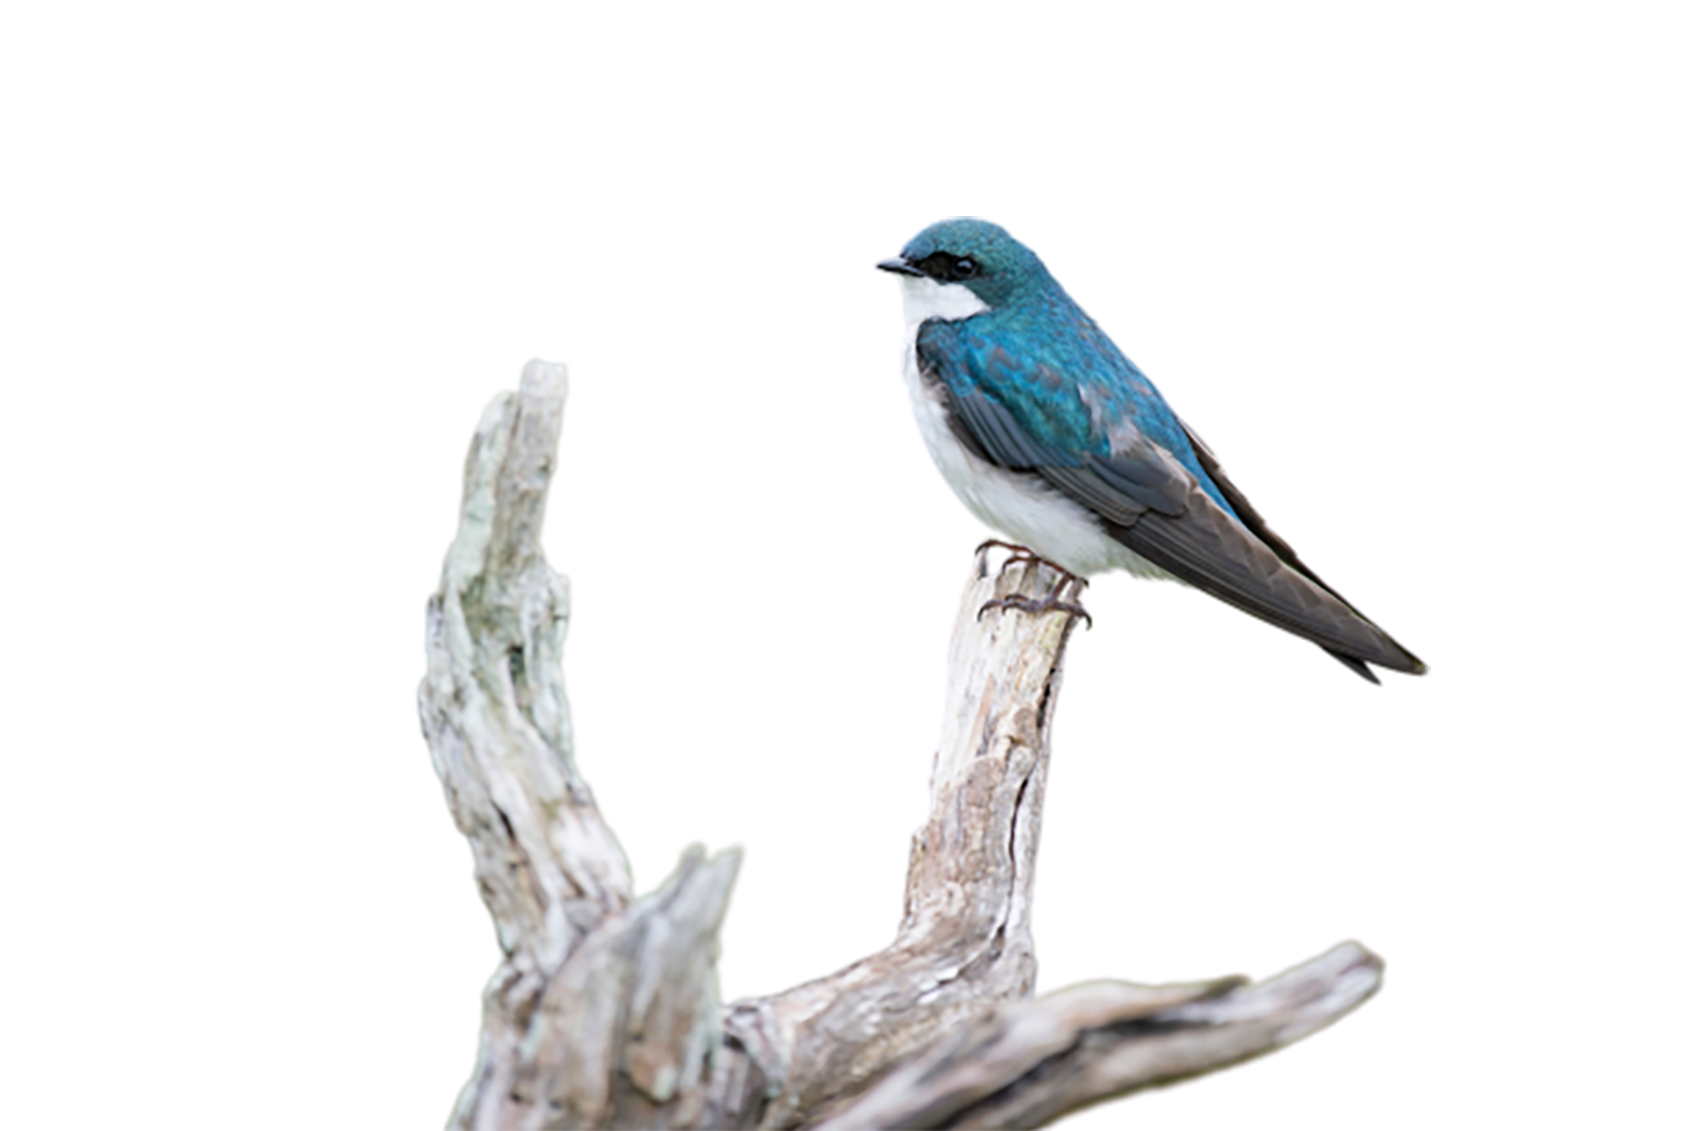 Blue-and-white flycatcher transparent background PNG